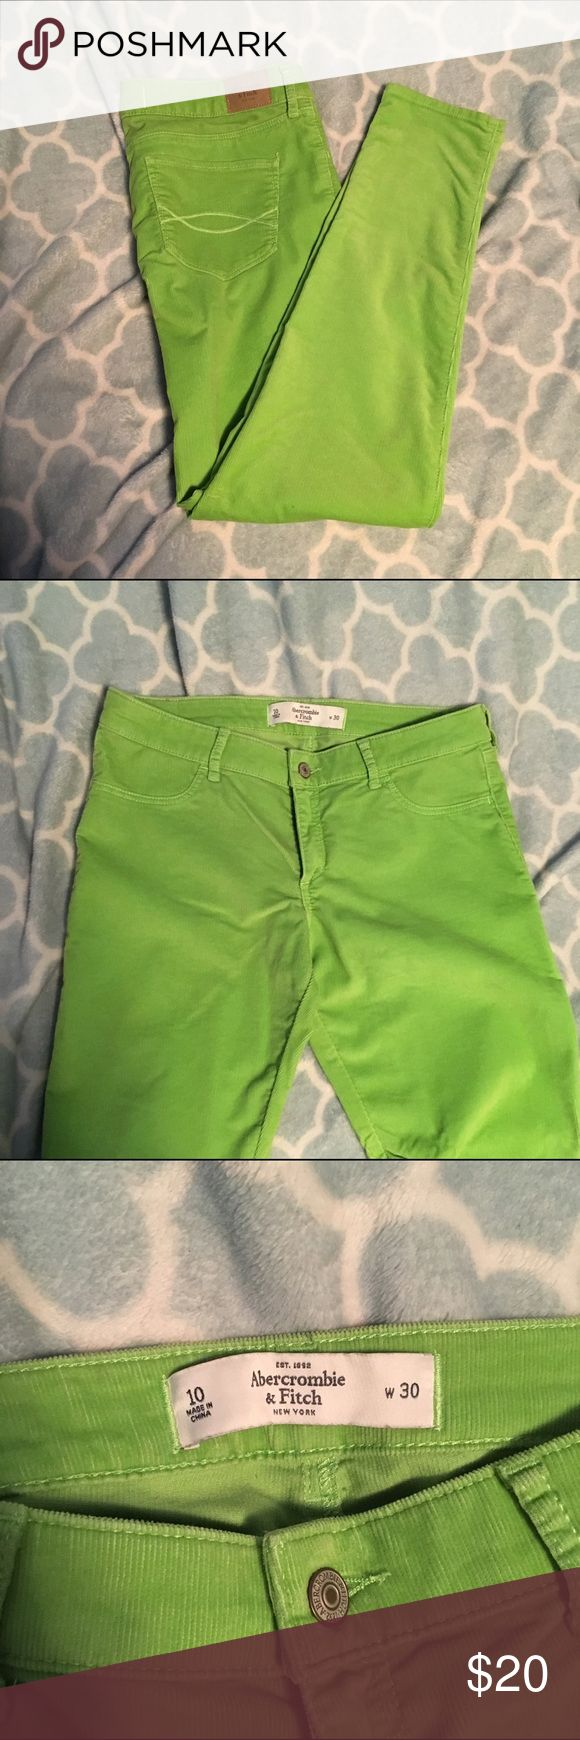 Lime Green A&F Corduroy Skinny Pants Size 10 A&F Corduroy Skinny Pants Size 10. Color is true to photos. In great condition, worn only once for a holiday party. They are soft to the touch and comfortable to wear. Abercrombie & Fitch Jeans Skinny